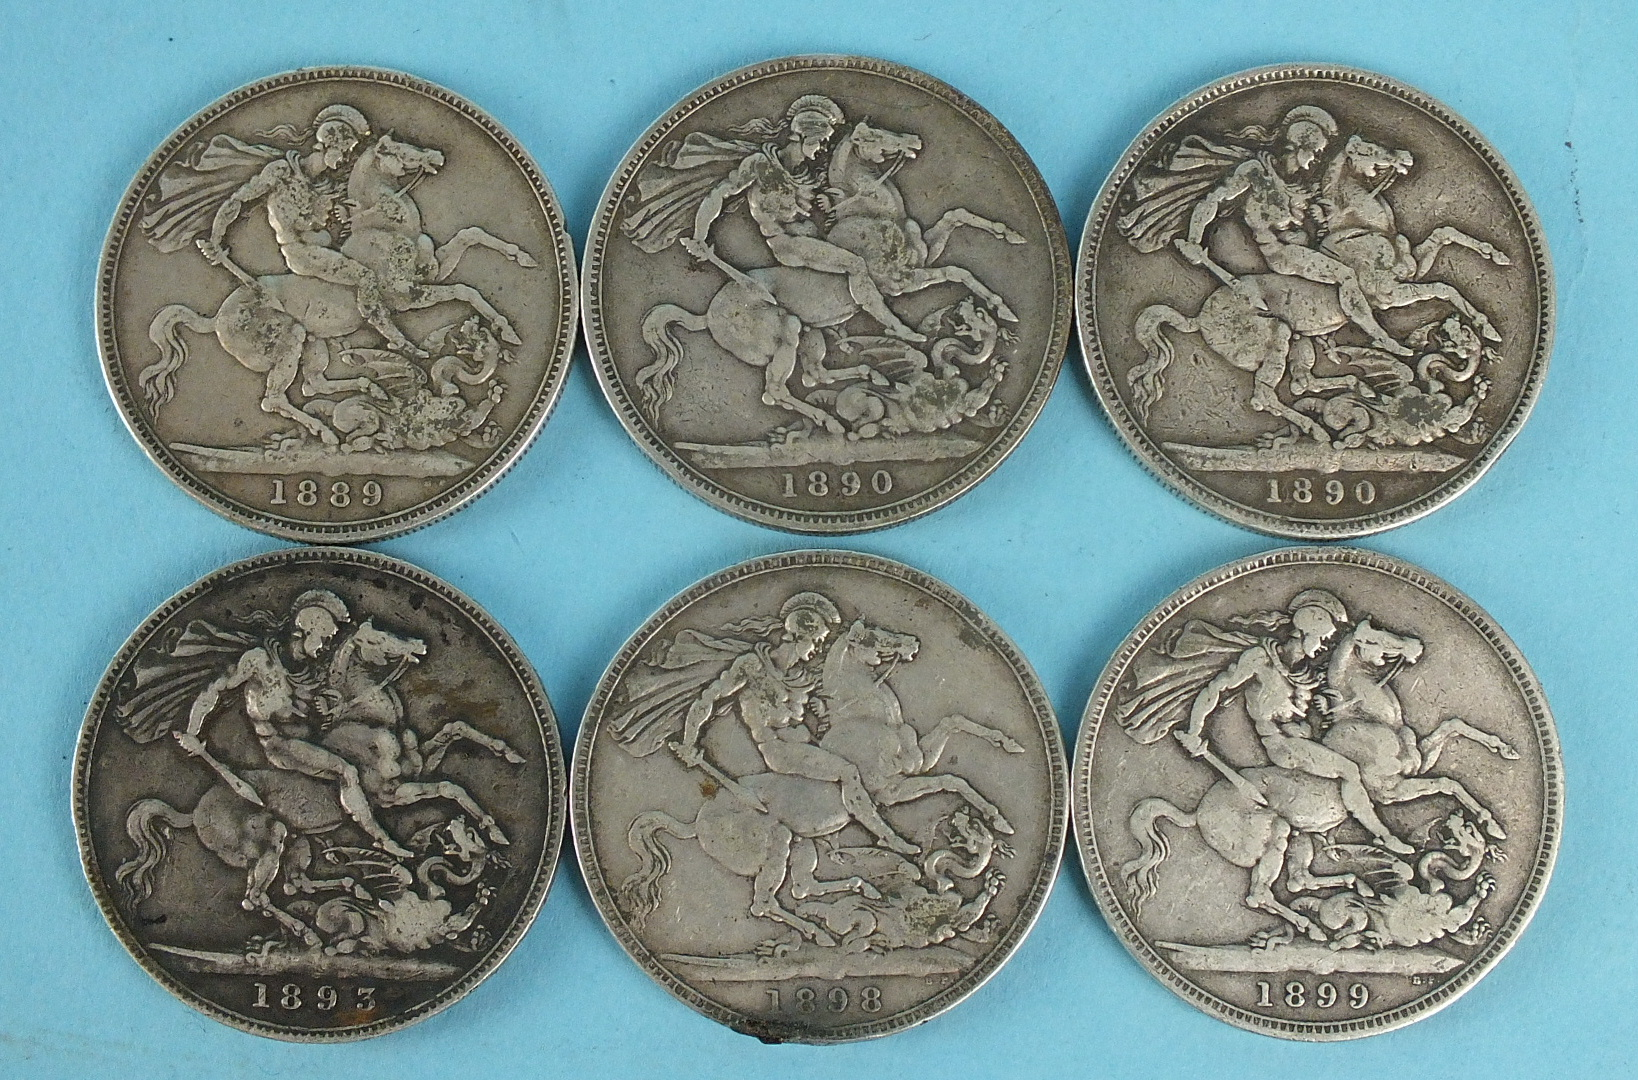 Lot 39 - A collection of six Victorian crowns: 1889, 1890x2, 1893, 1898, 1899, (6).